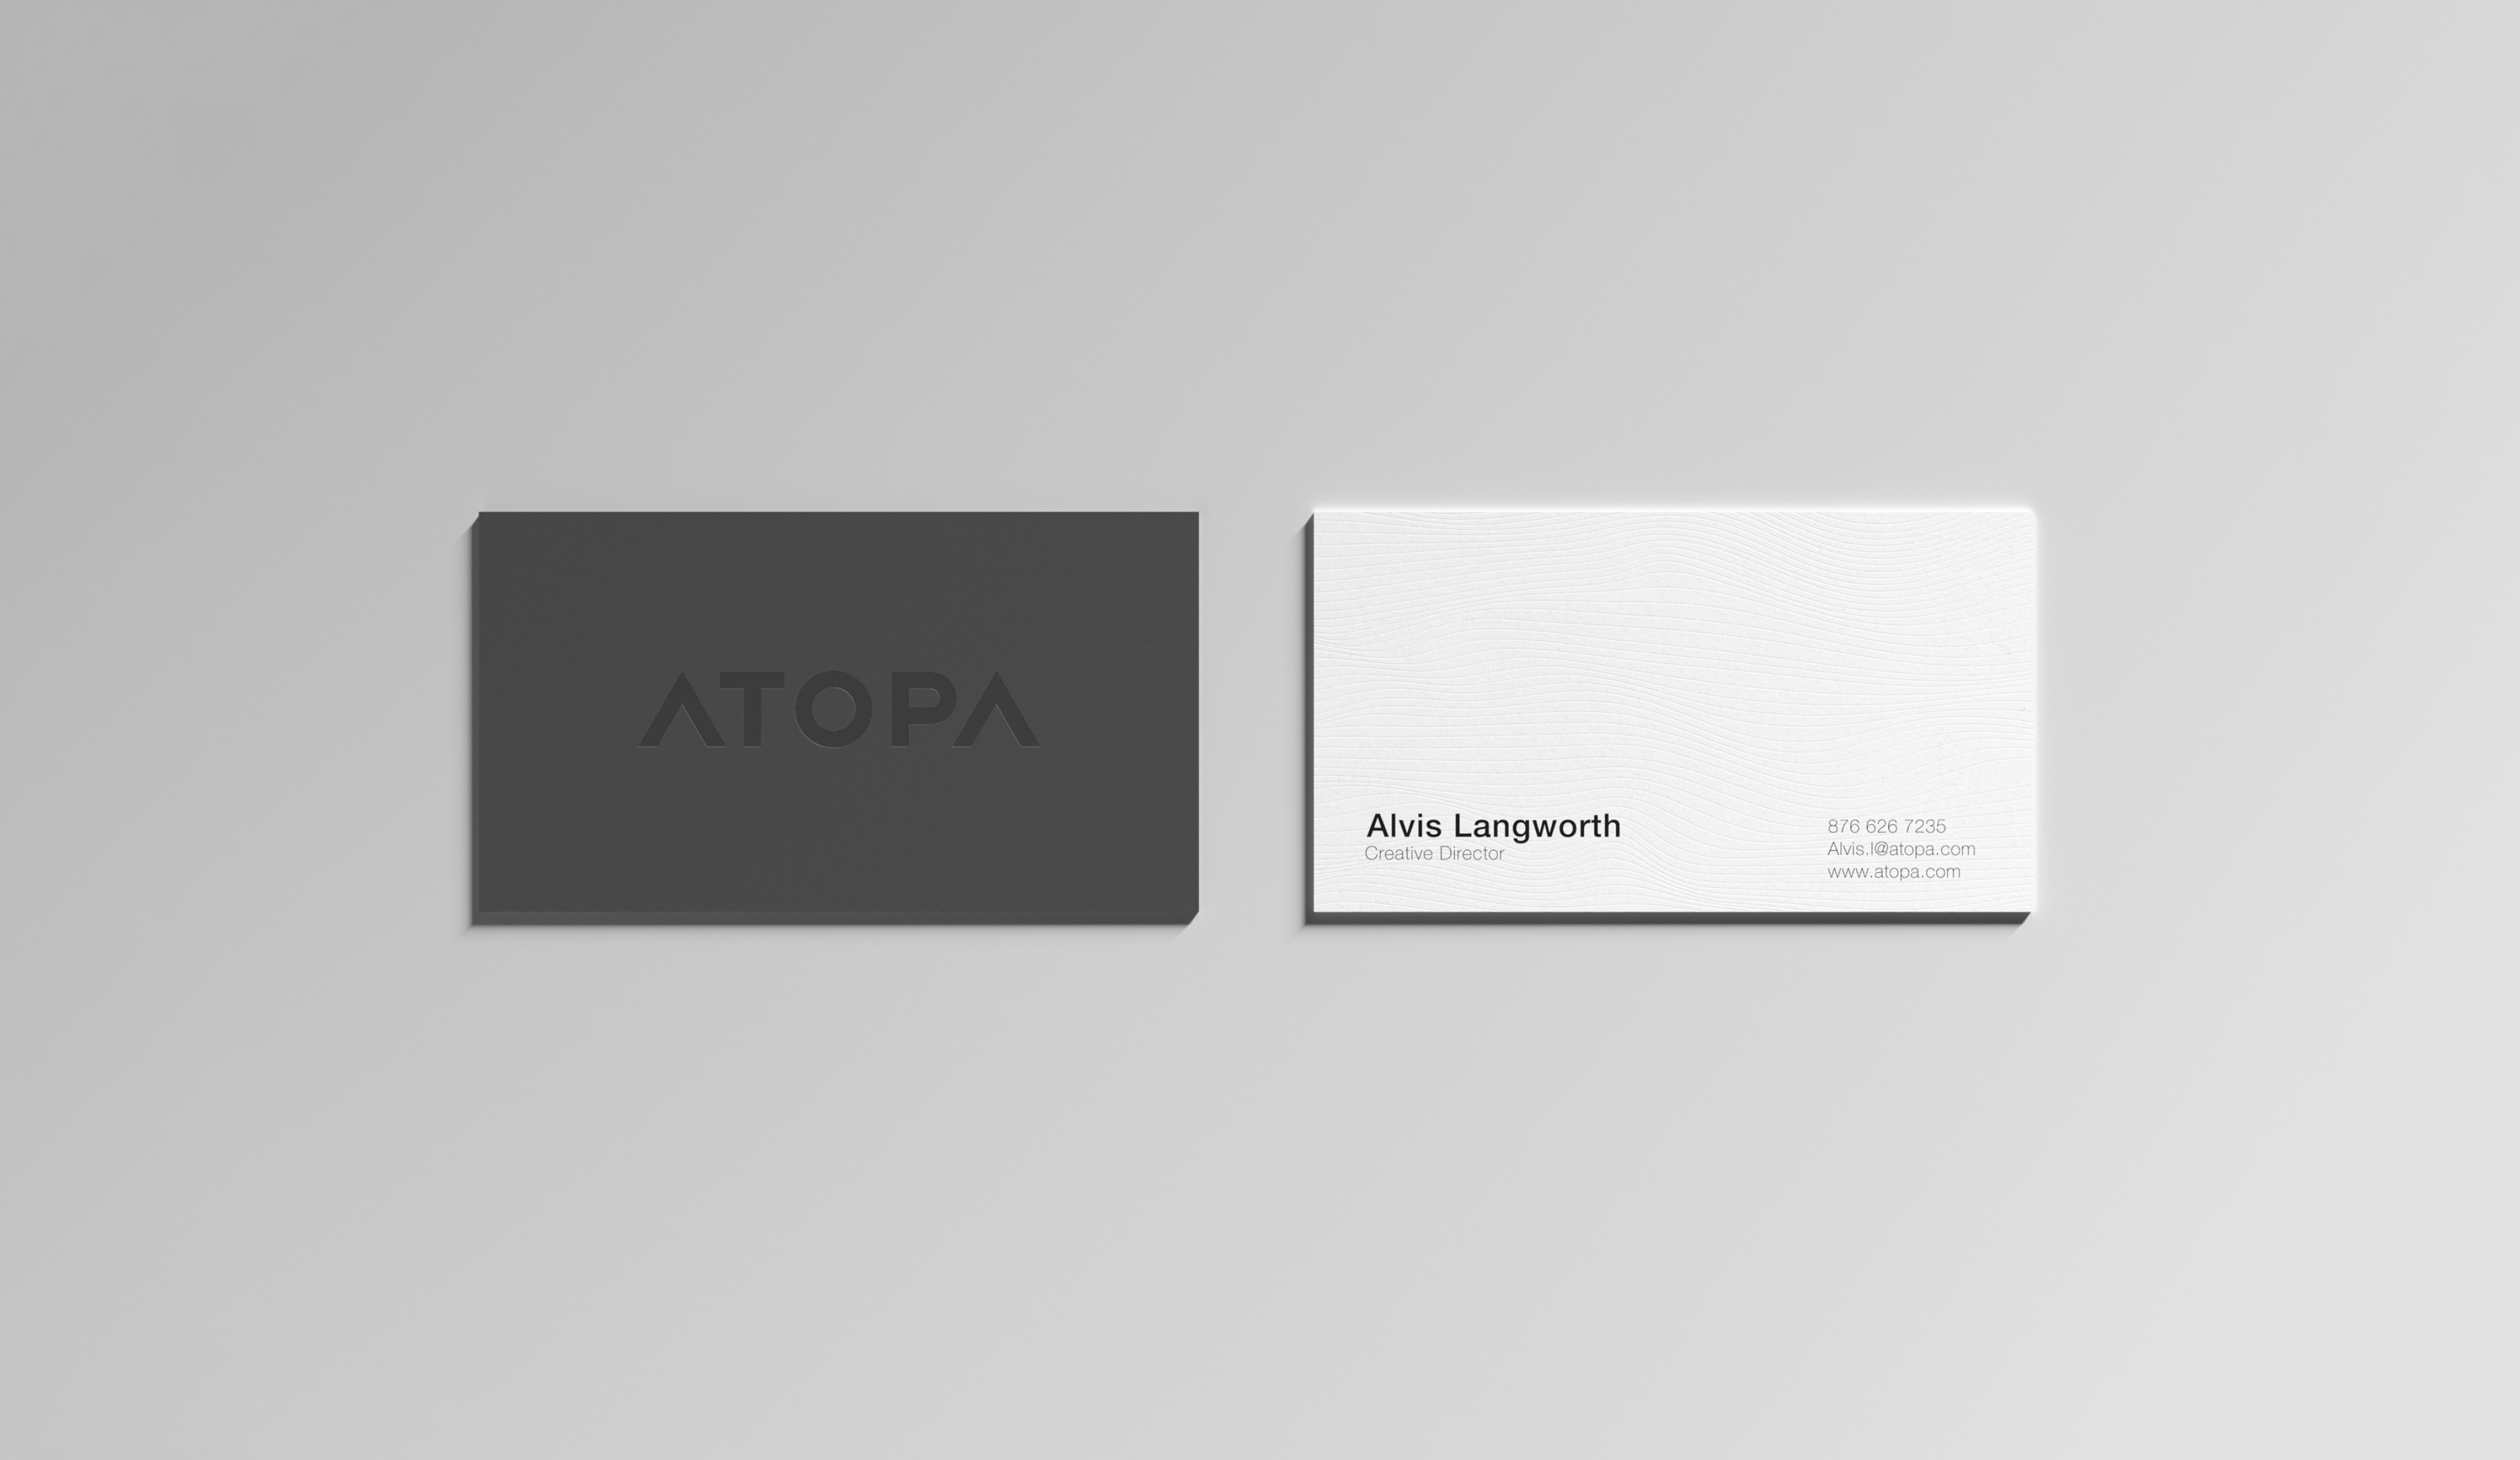 Atopa Business Cards